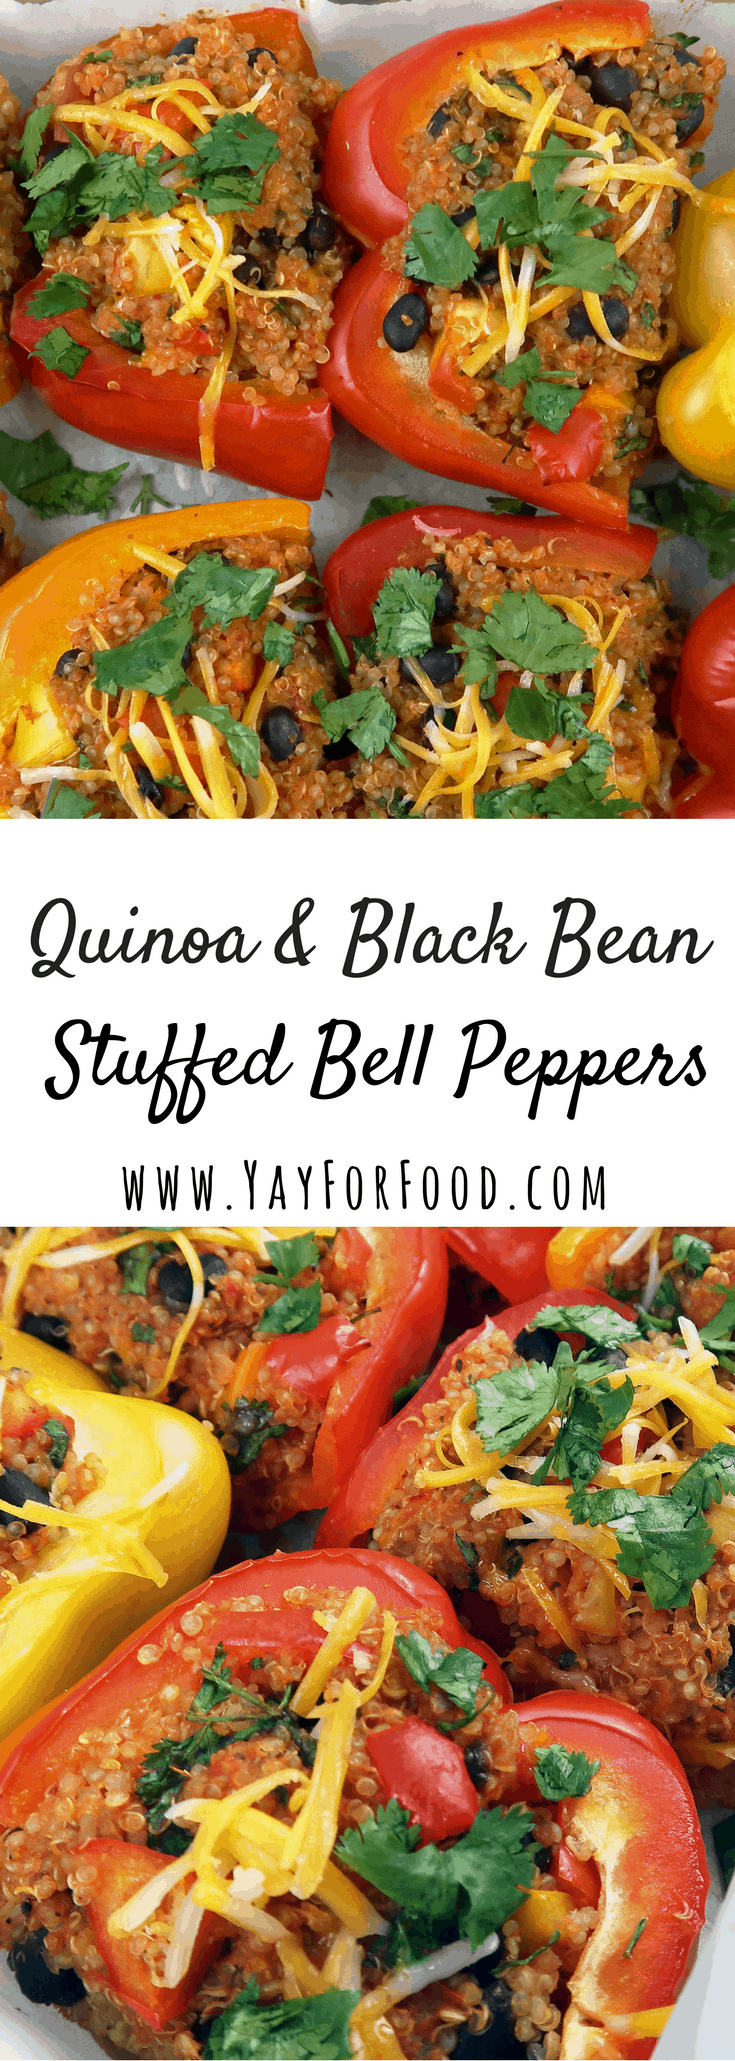 Quinoa and Black Bean Stuffed Bell Peppers #stuffedbellpeppers